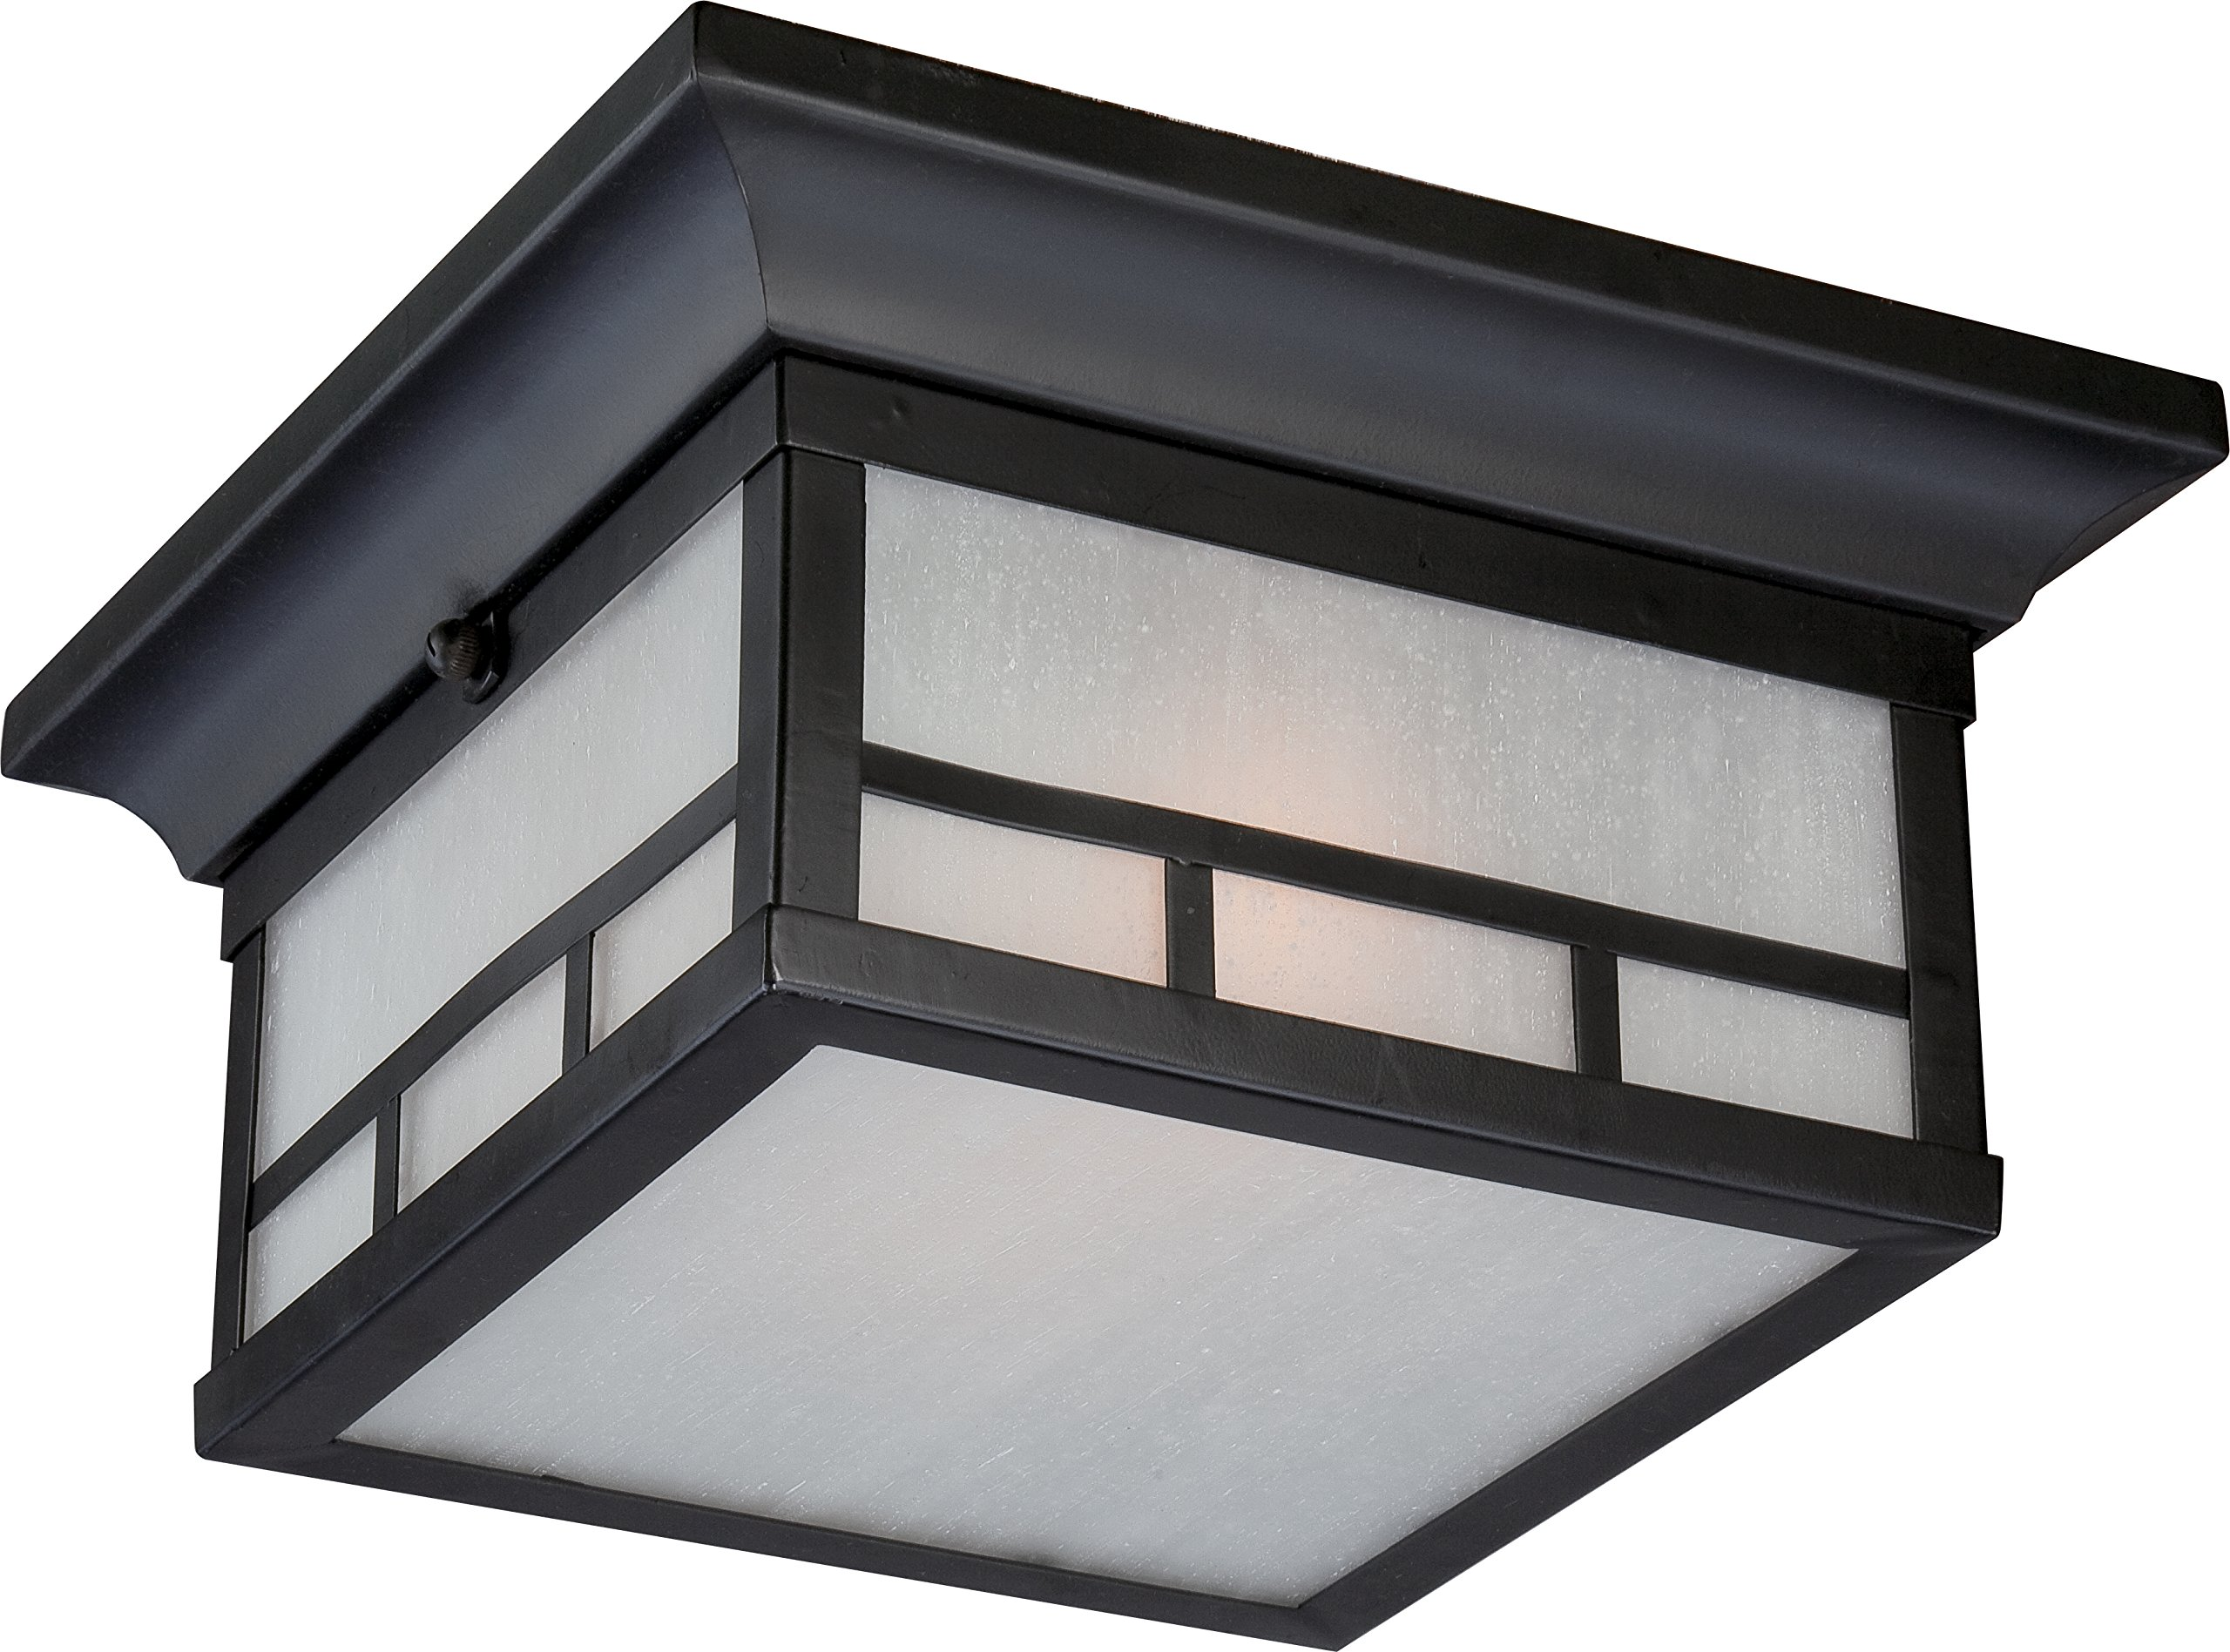 Nuvo Lighting 60/5606 Drexel Flush 2 Light 60-watt A19 Outdoor Close to Ceiling Porch and Patio Lighting with Frosted Seed Glass, Stone Black